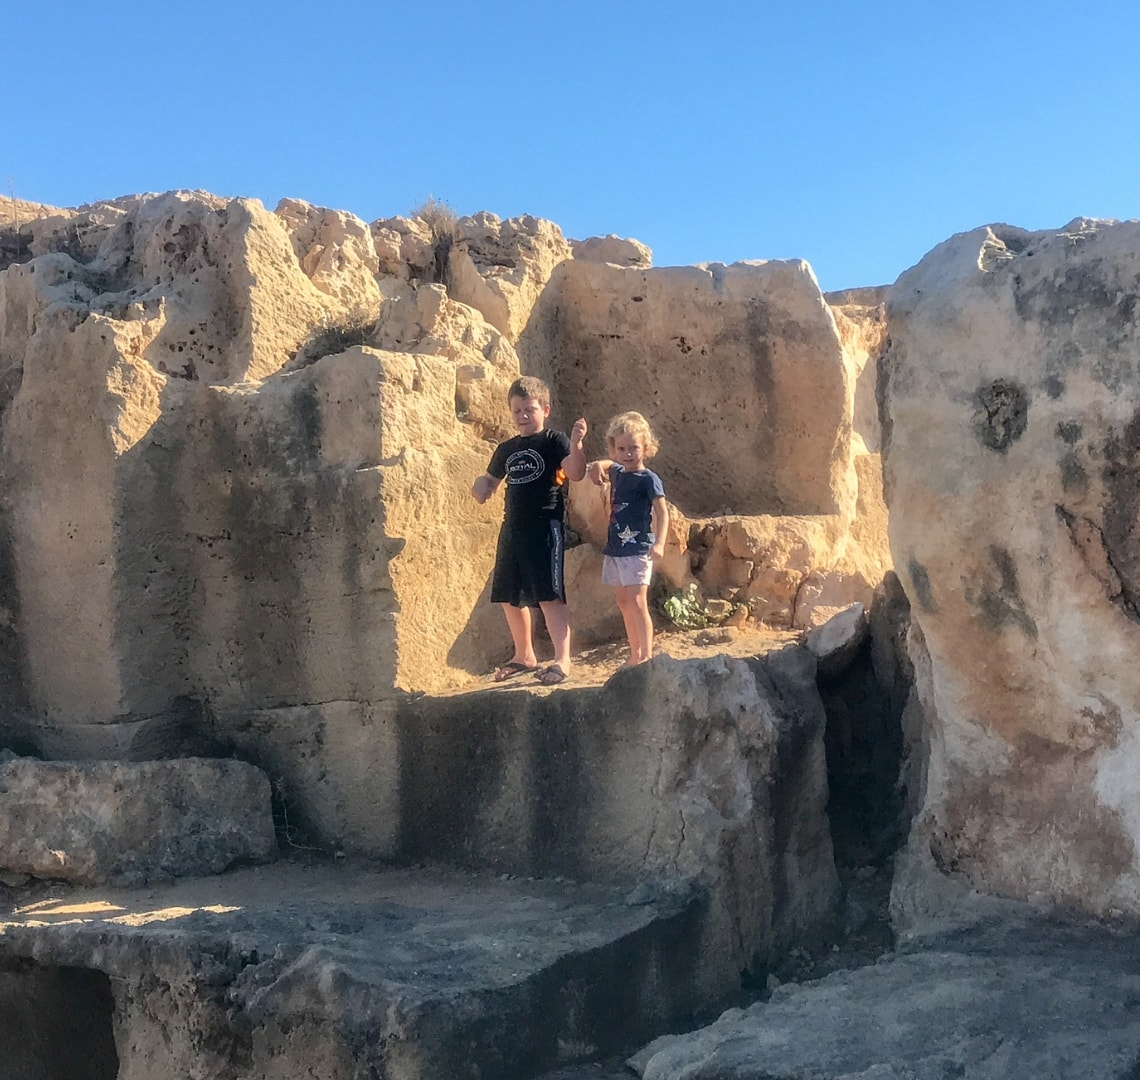 Best family holiday destinations - the Things dancing like crazies in the Paphos ruins